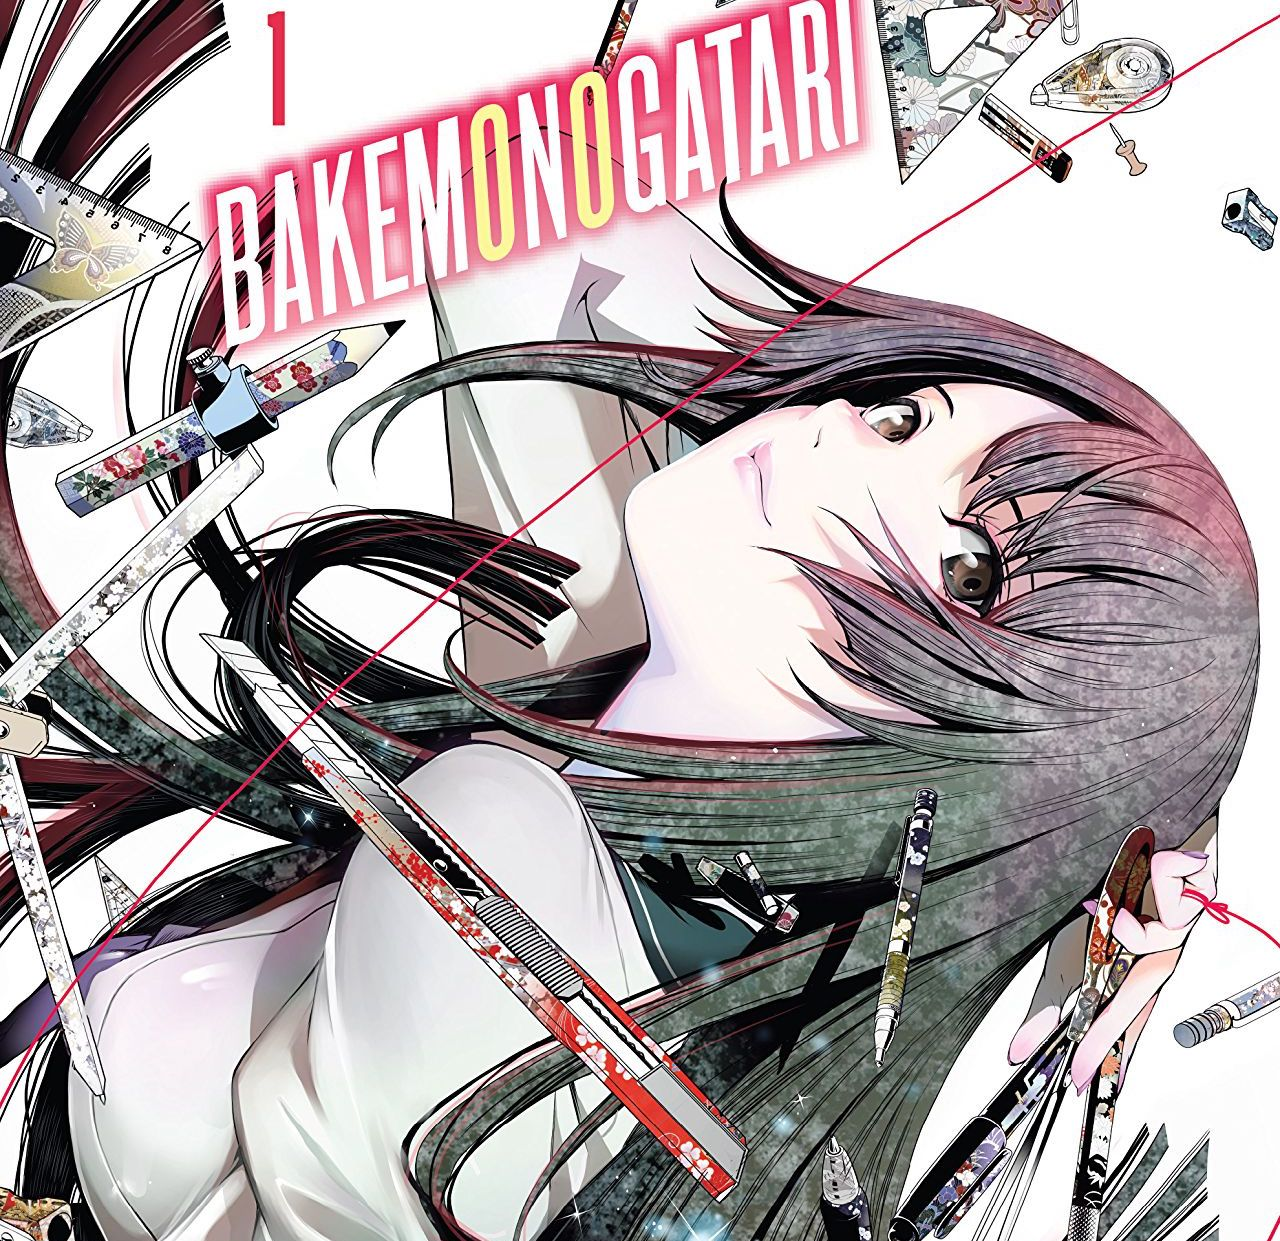 Bakemonogatari Vol. 1 Review